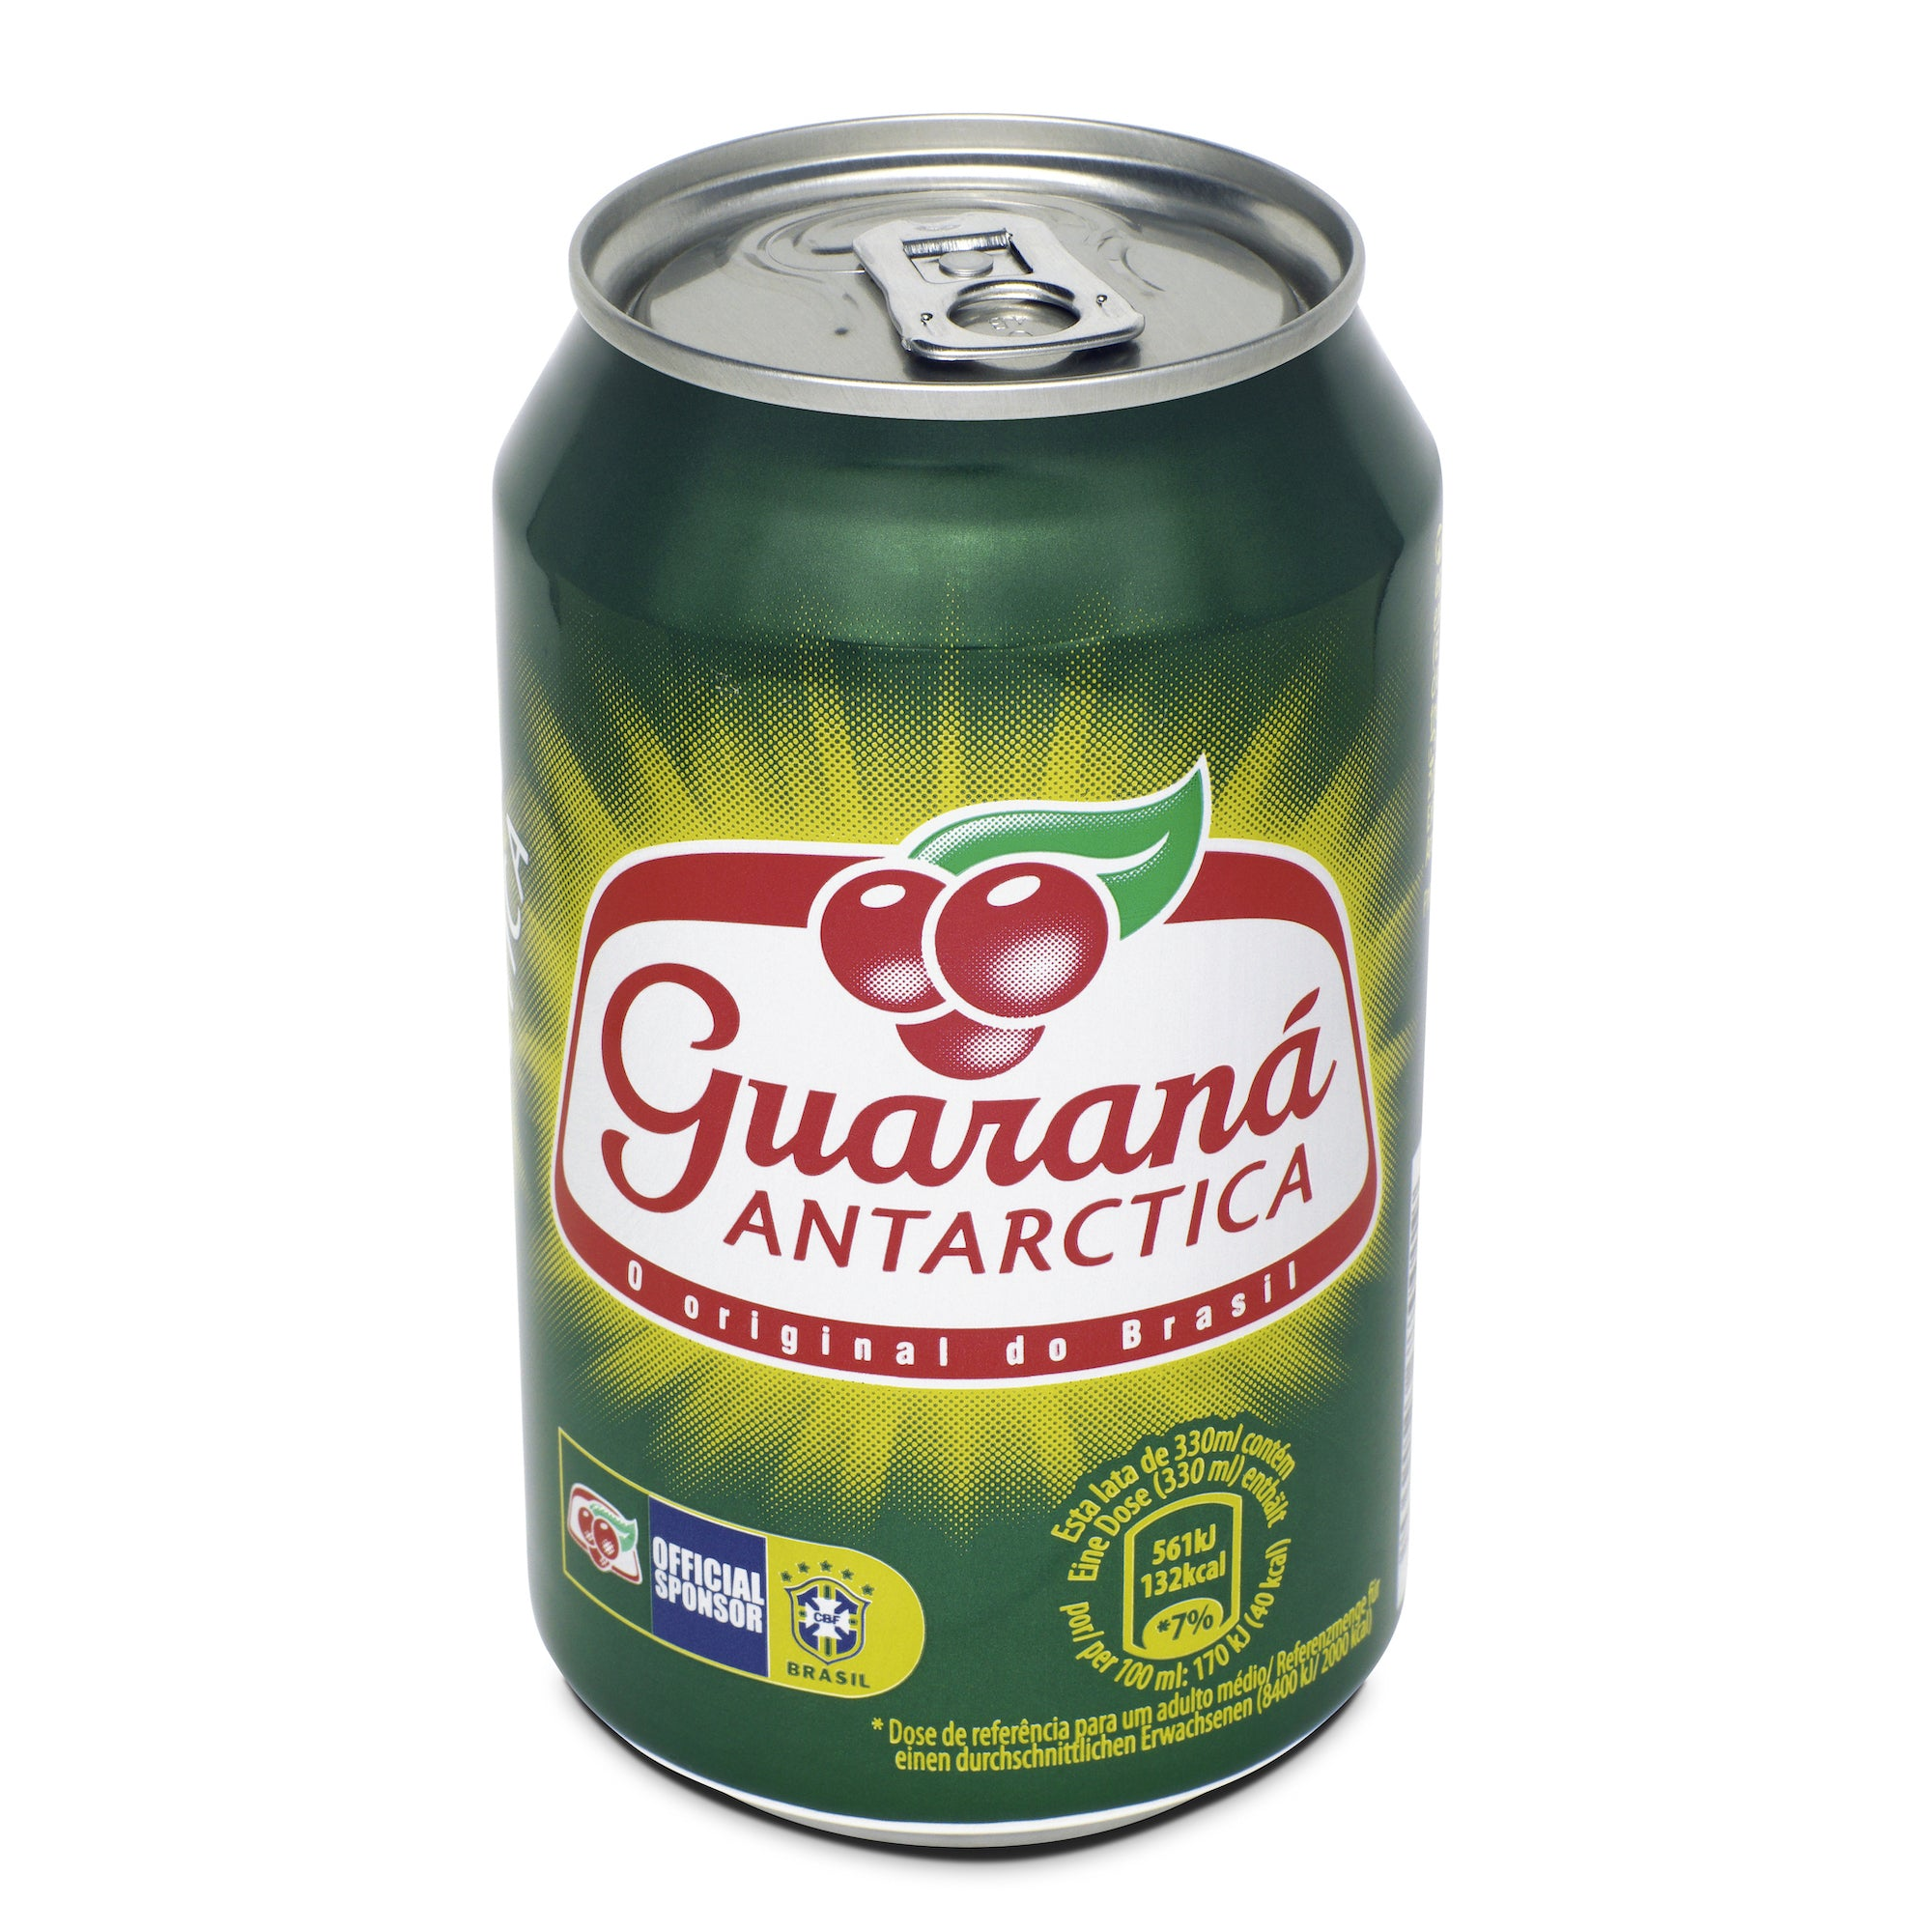 GUARANÁ ANTARCTICA 24x330ml